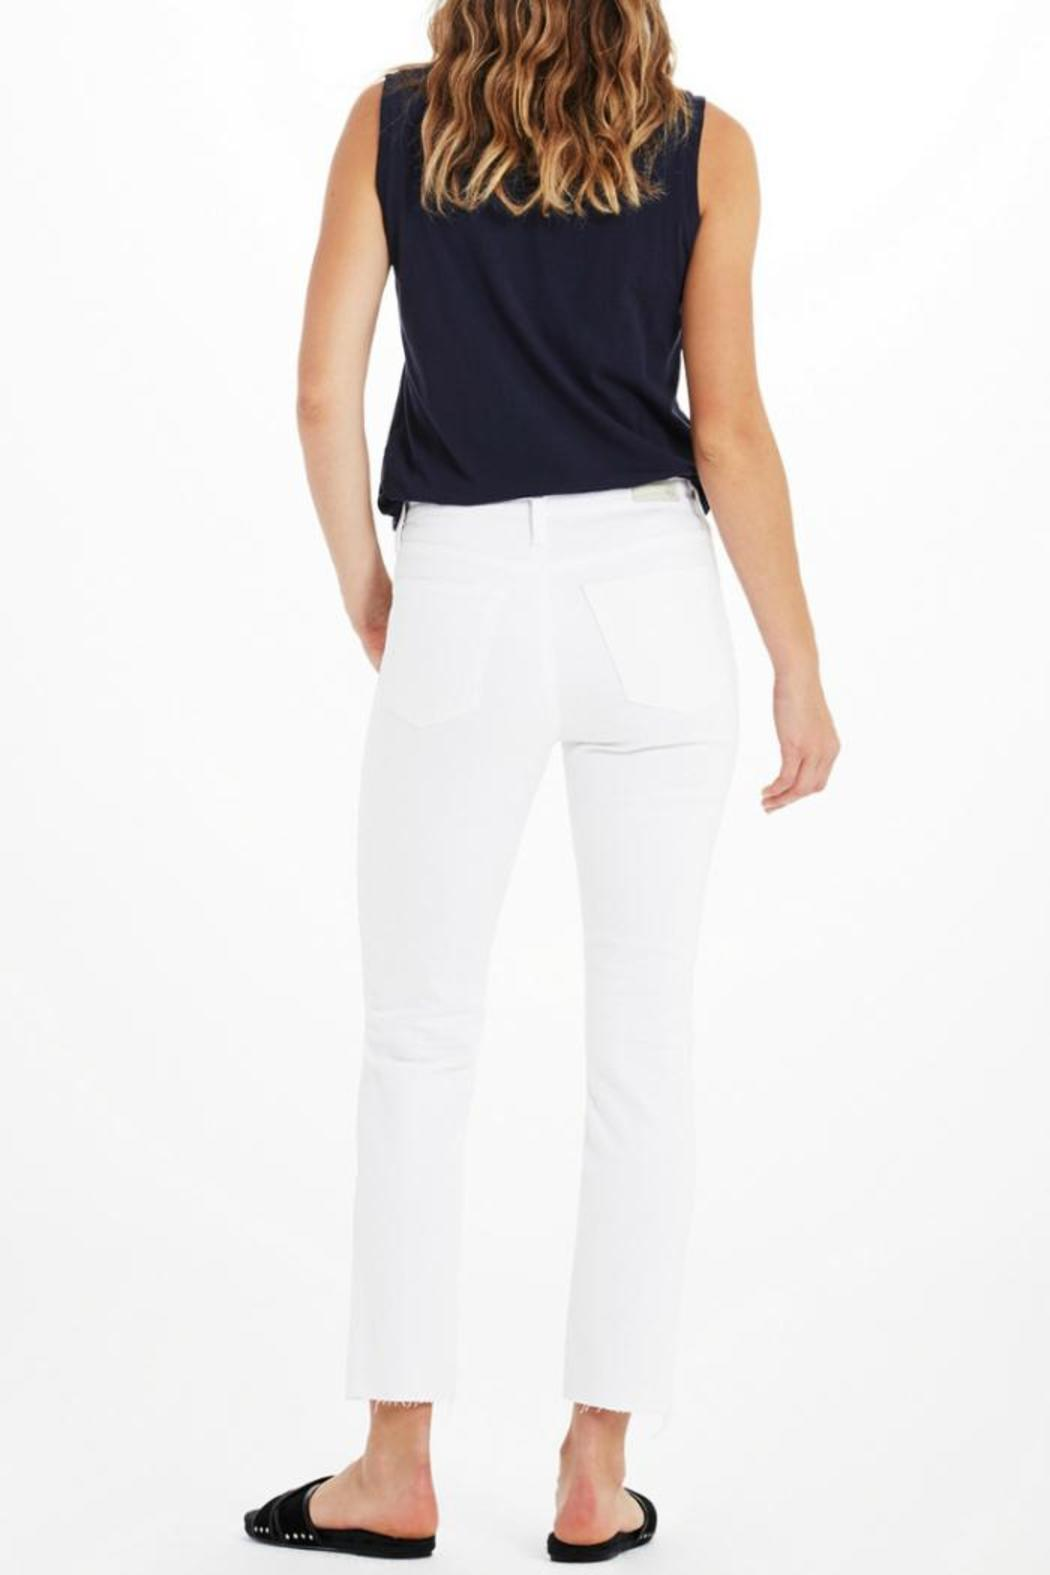 AG Jeans Isabelle White Pants - Side Cropped Image